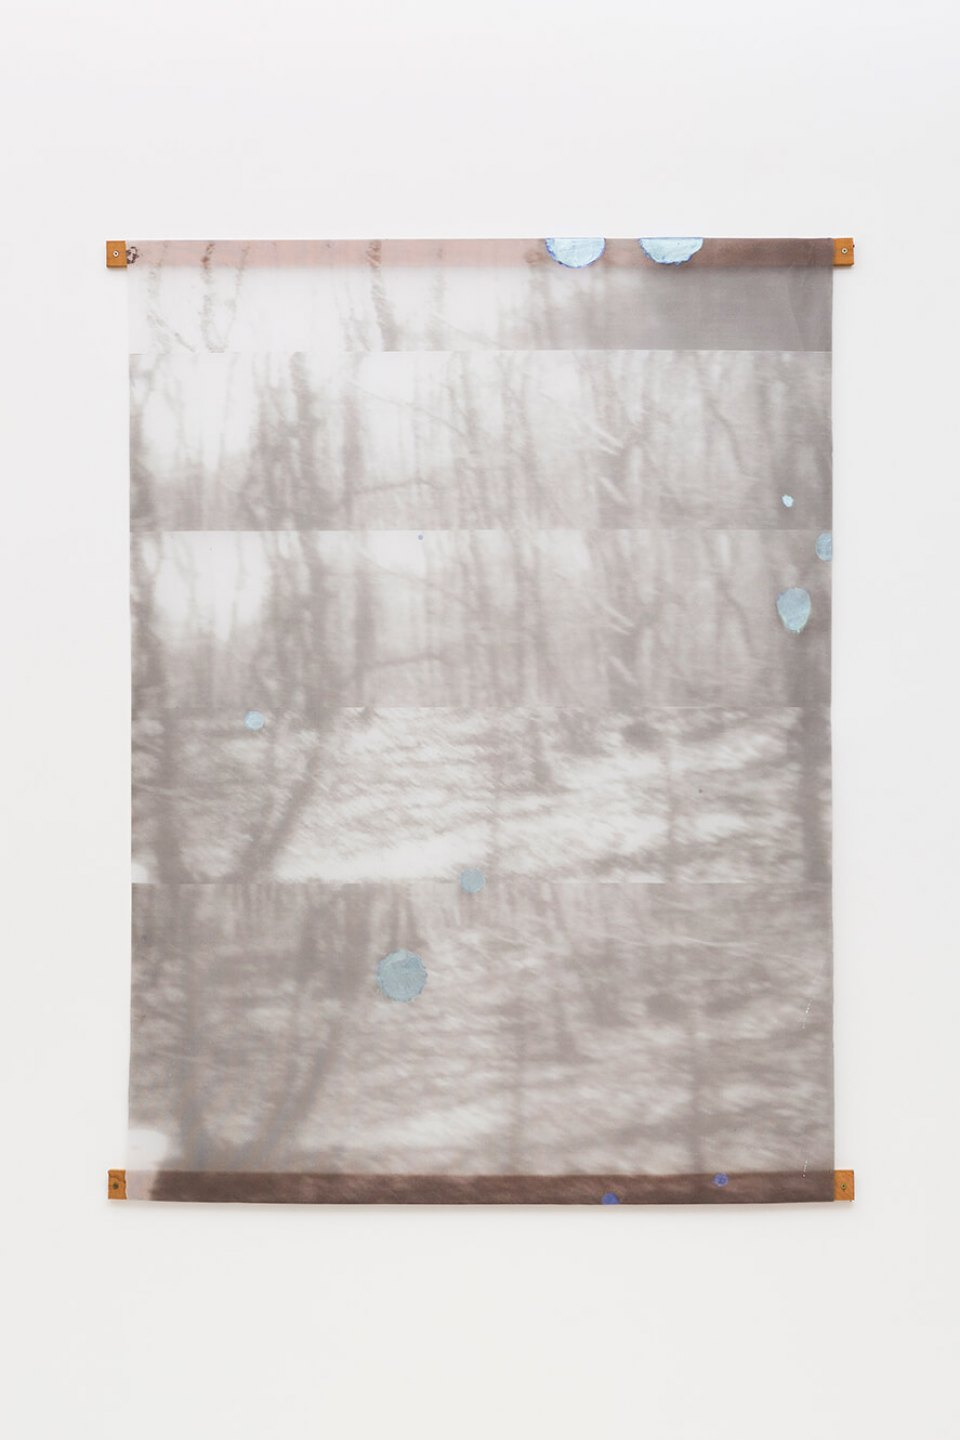 Marina Perez Simão,&nbsp;<em>Untitled,</em>&nbsp;2015, print and iridescent pigment on voile, 174,5 × 135 cm&nbsp; - Mendes Wood DM